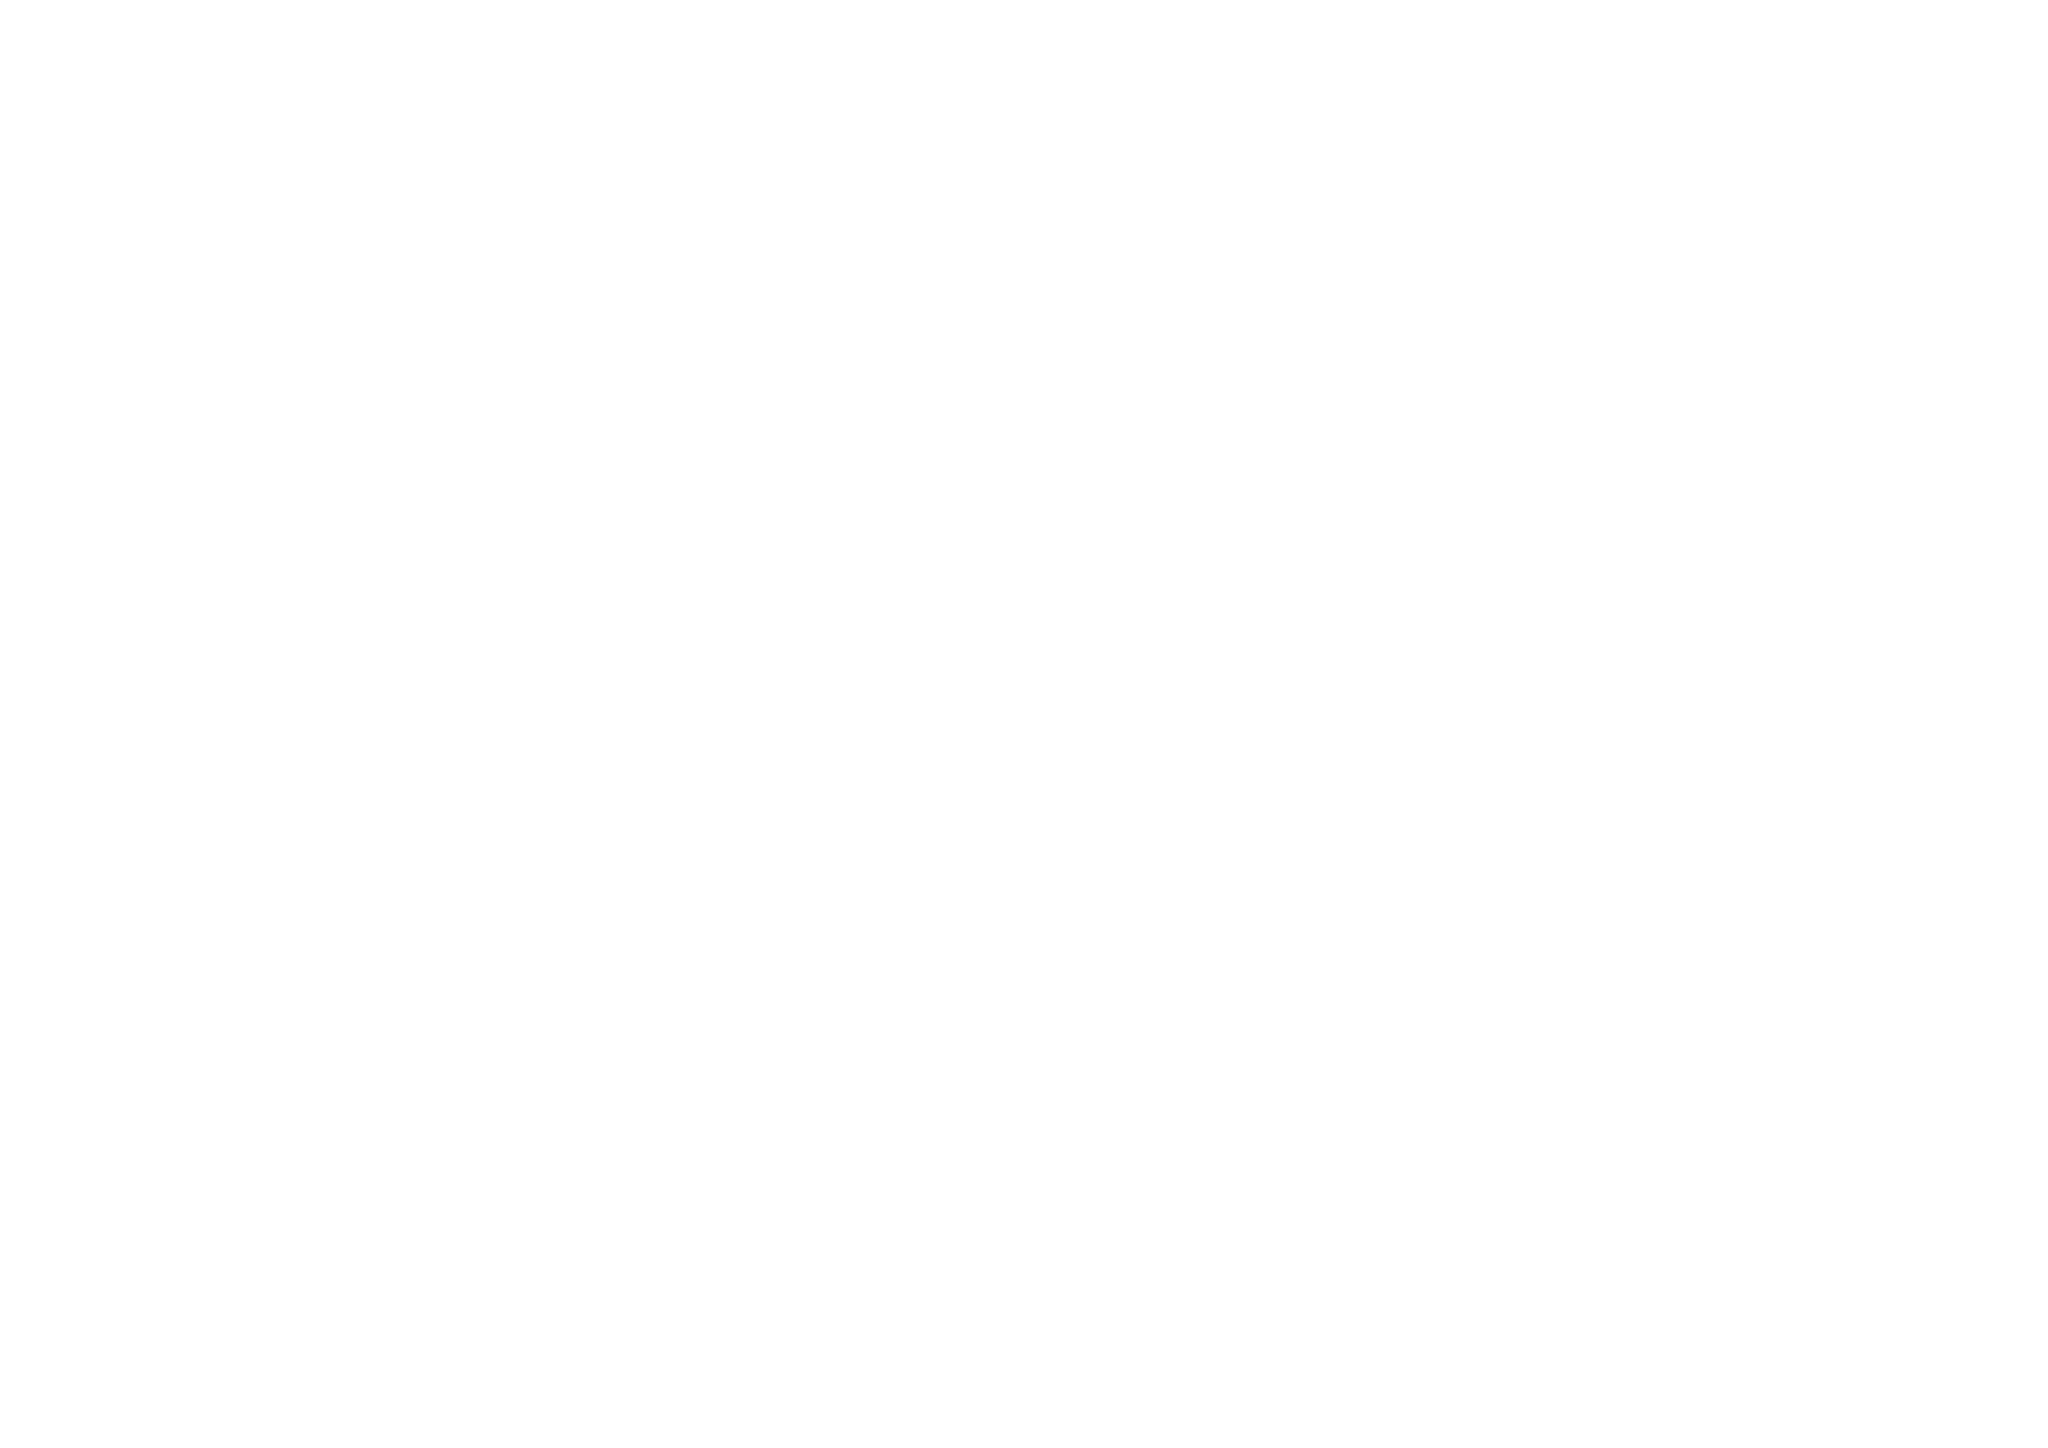 bettie testier diet etik logo